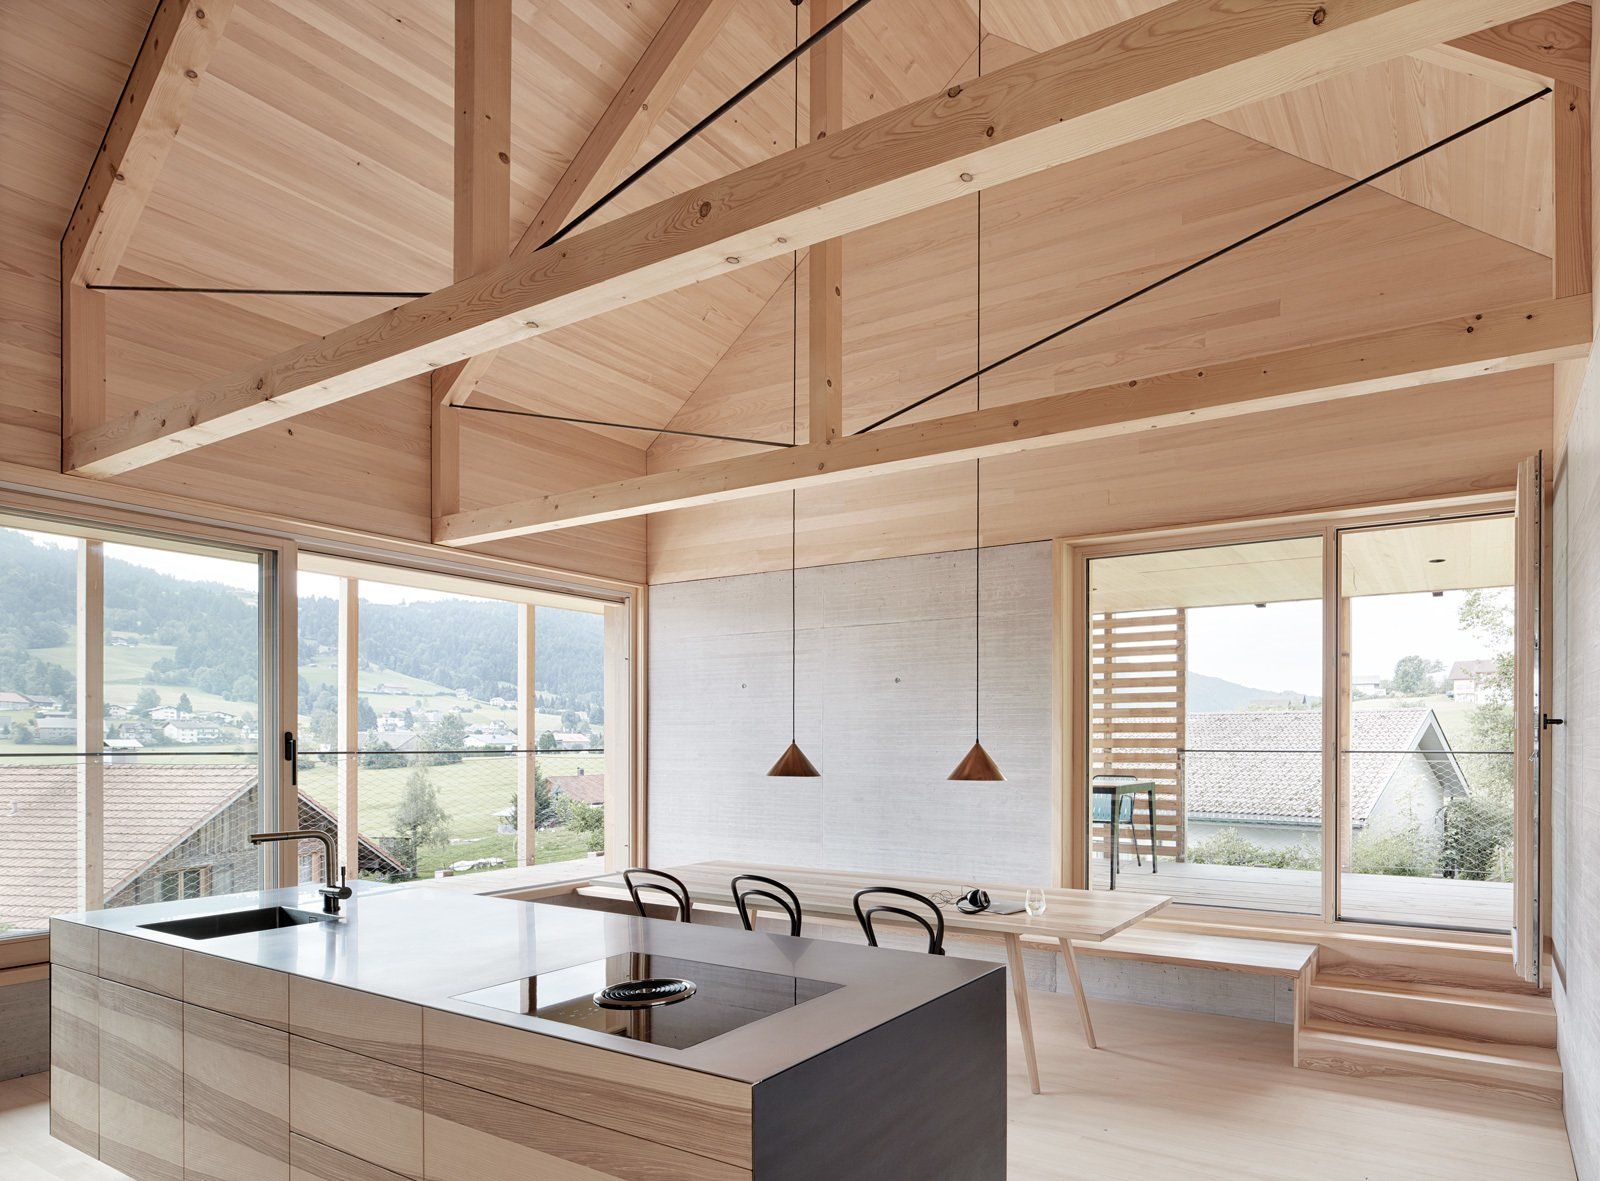 Exposed trusses celebrate the home's timber construction.